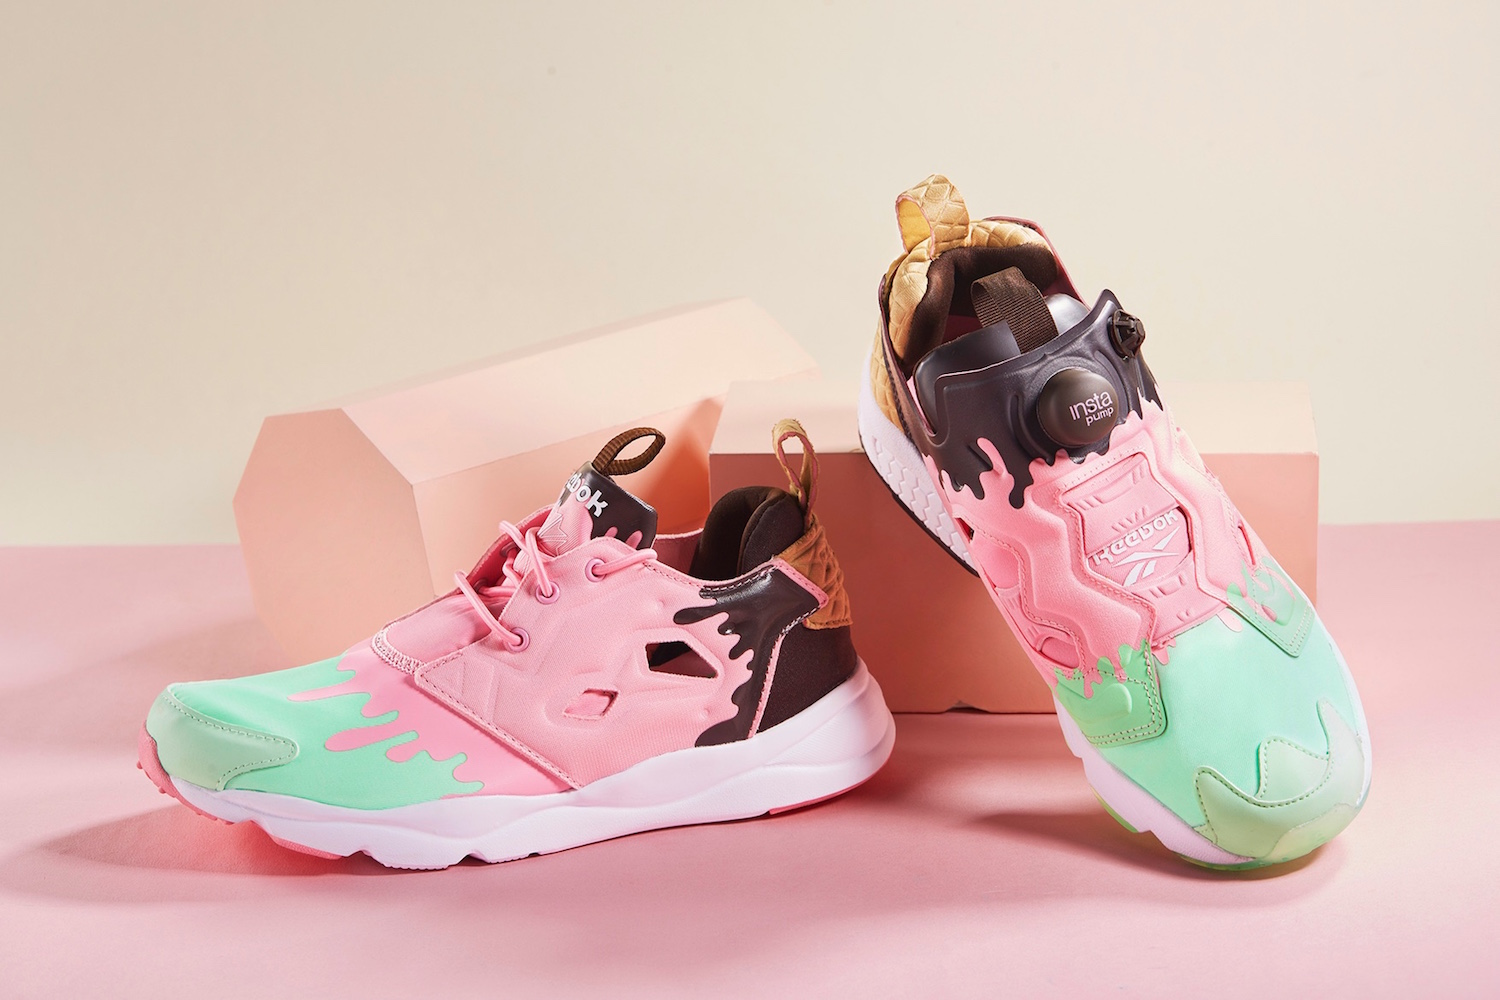 Reebok-Instapump-Fury-Ice-Cream-02